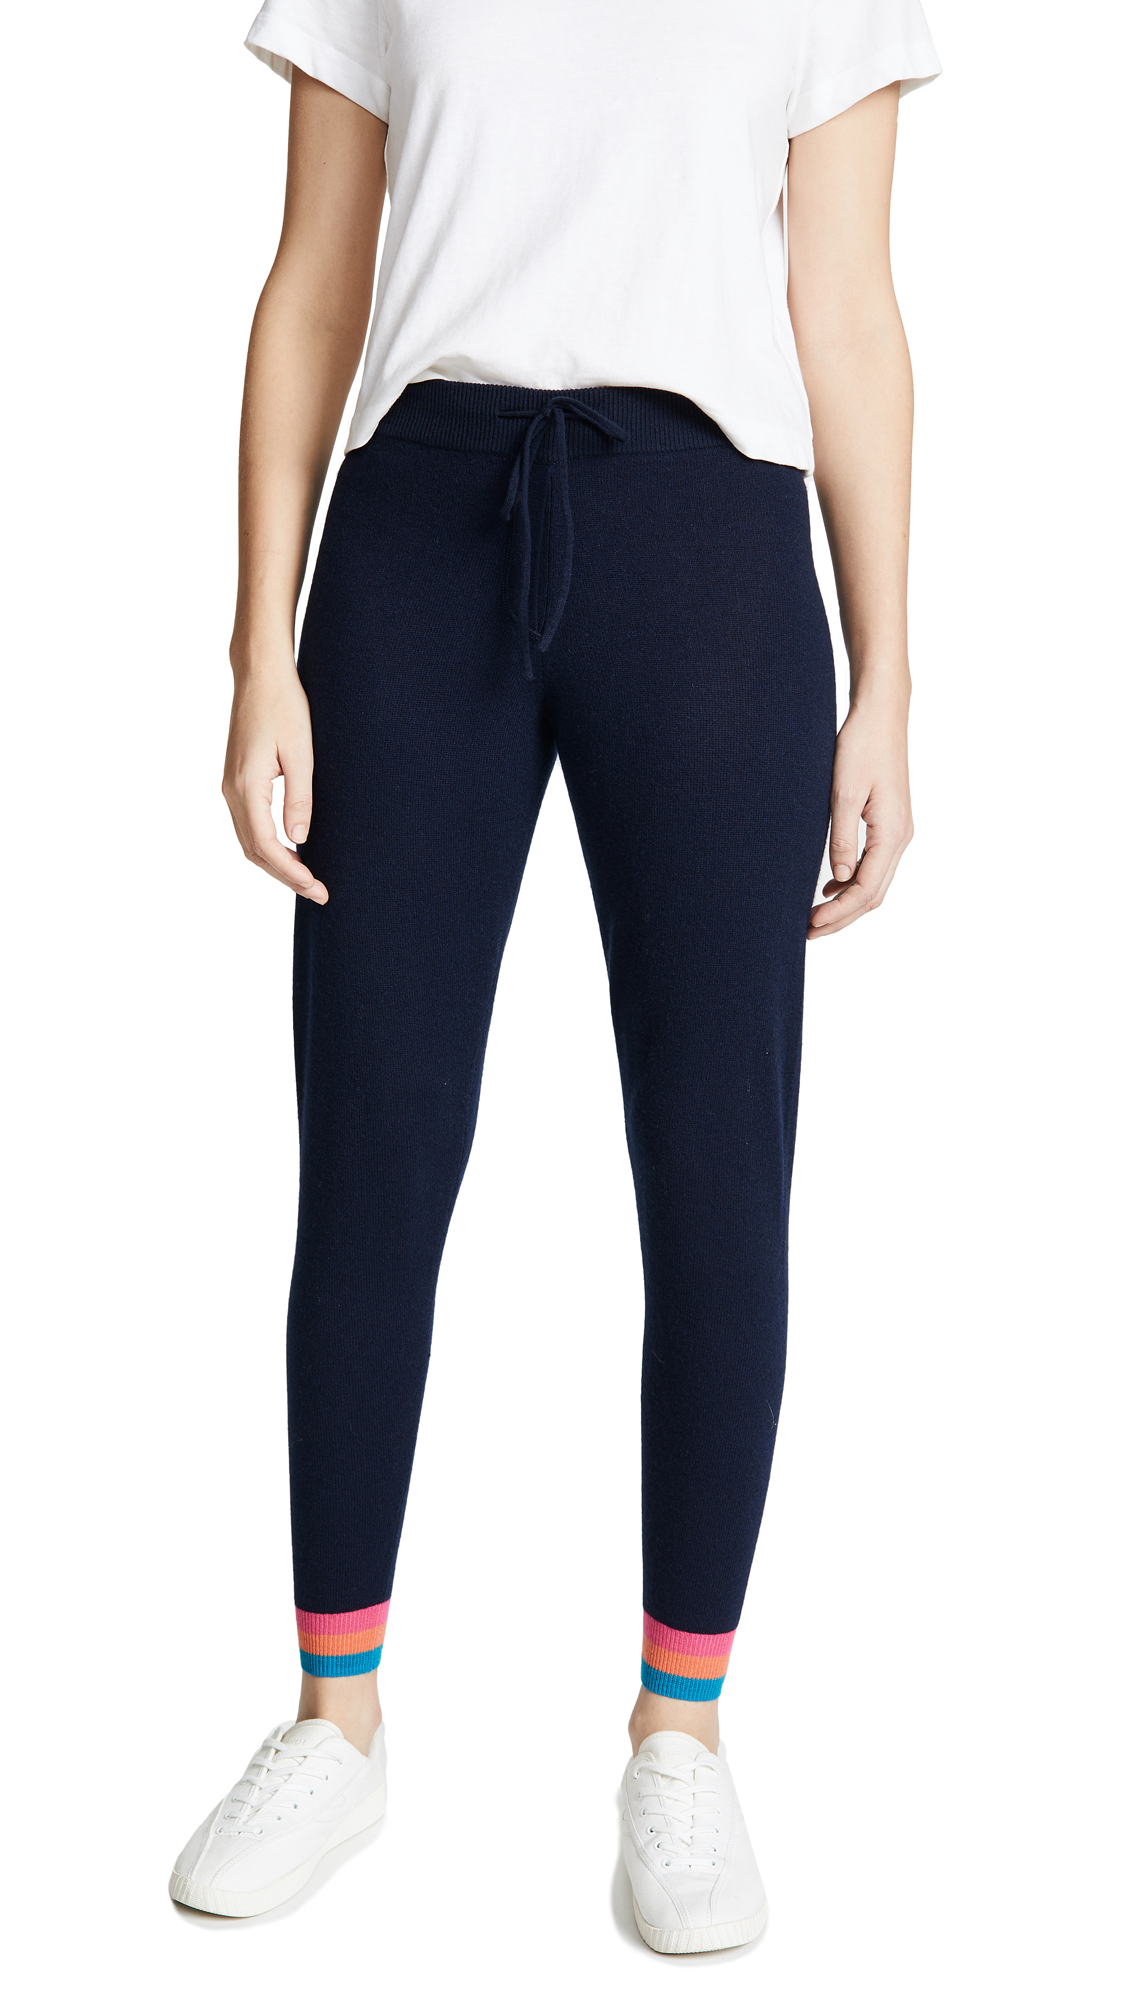 Chinti and Parker Stripe Cuff Cashmere Track Pants - Navy/Multi